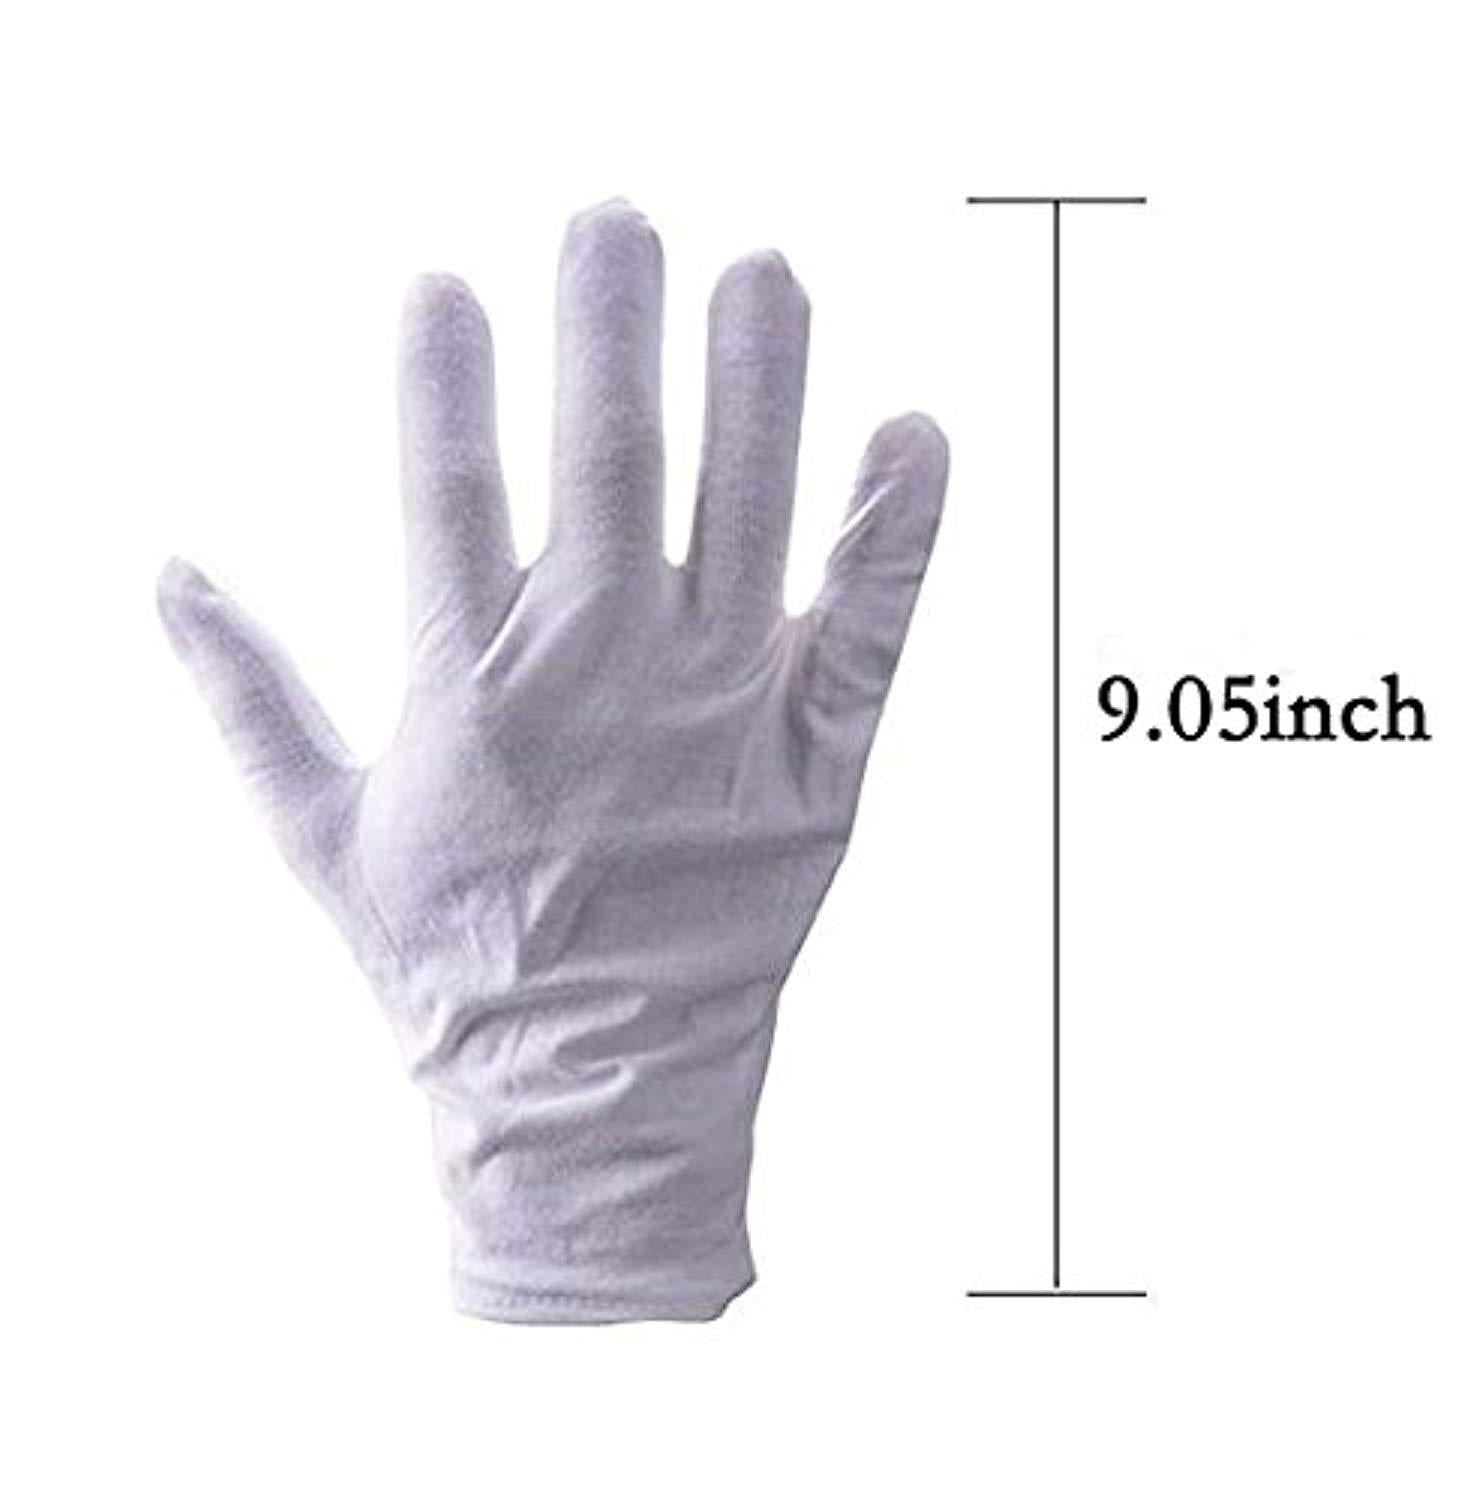 10Pairs White Cotton Gloves Large Size for Coin Jewelry Silver Inspection by SLD